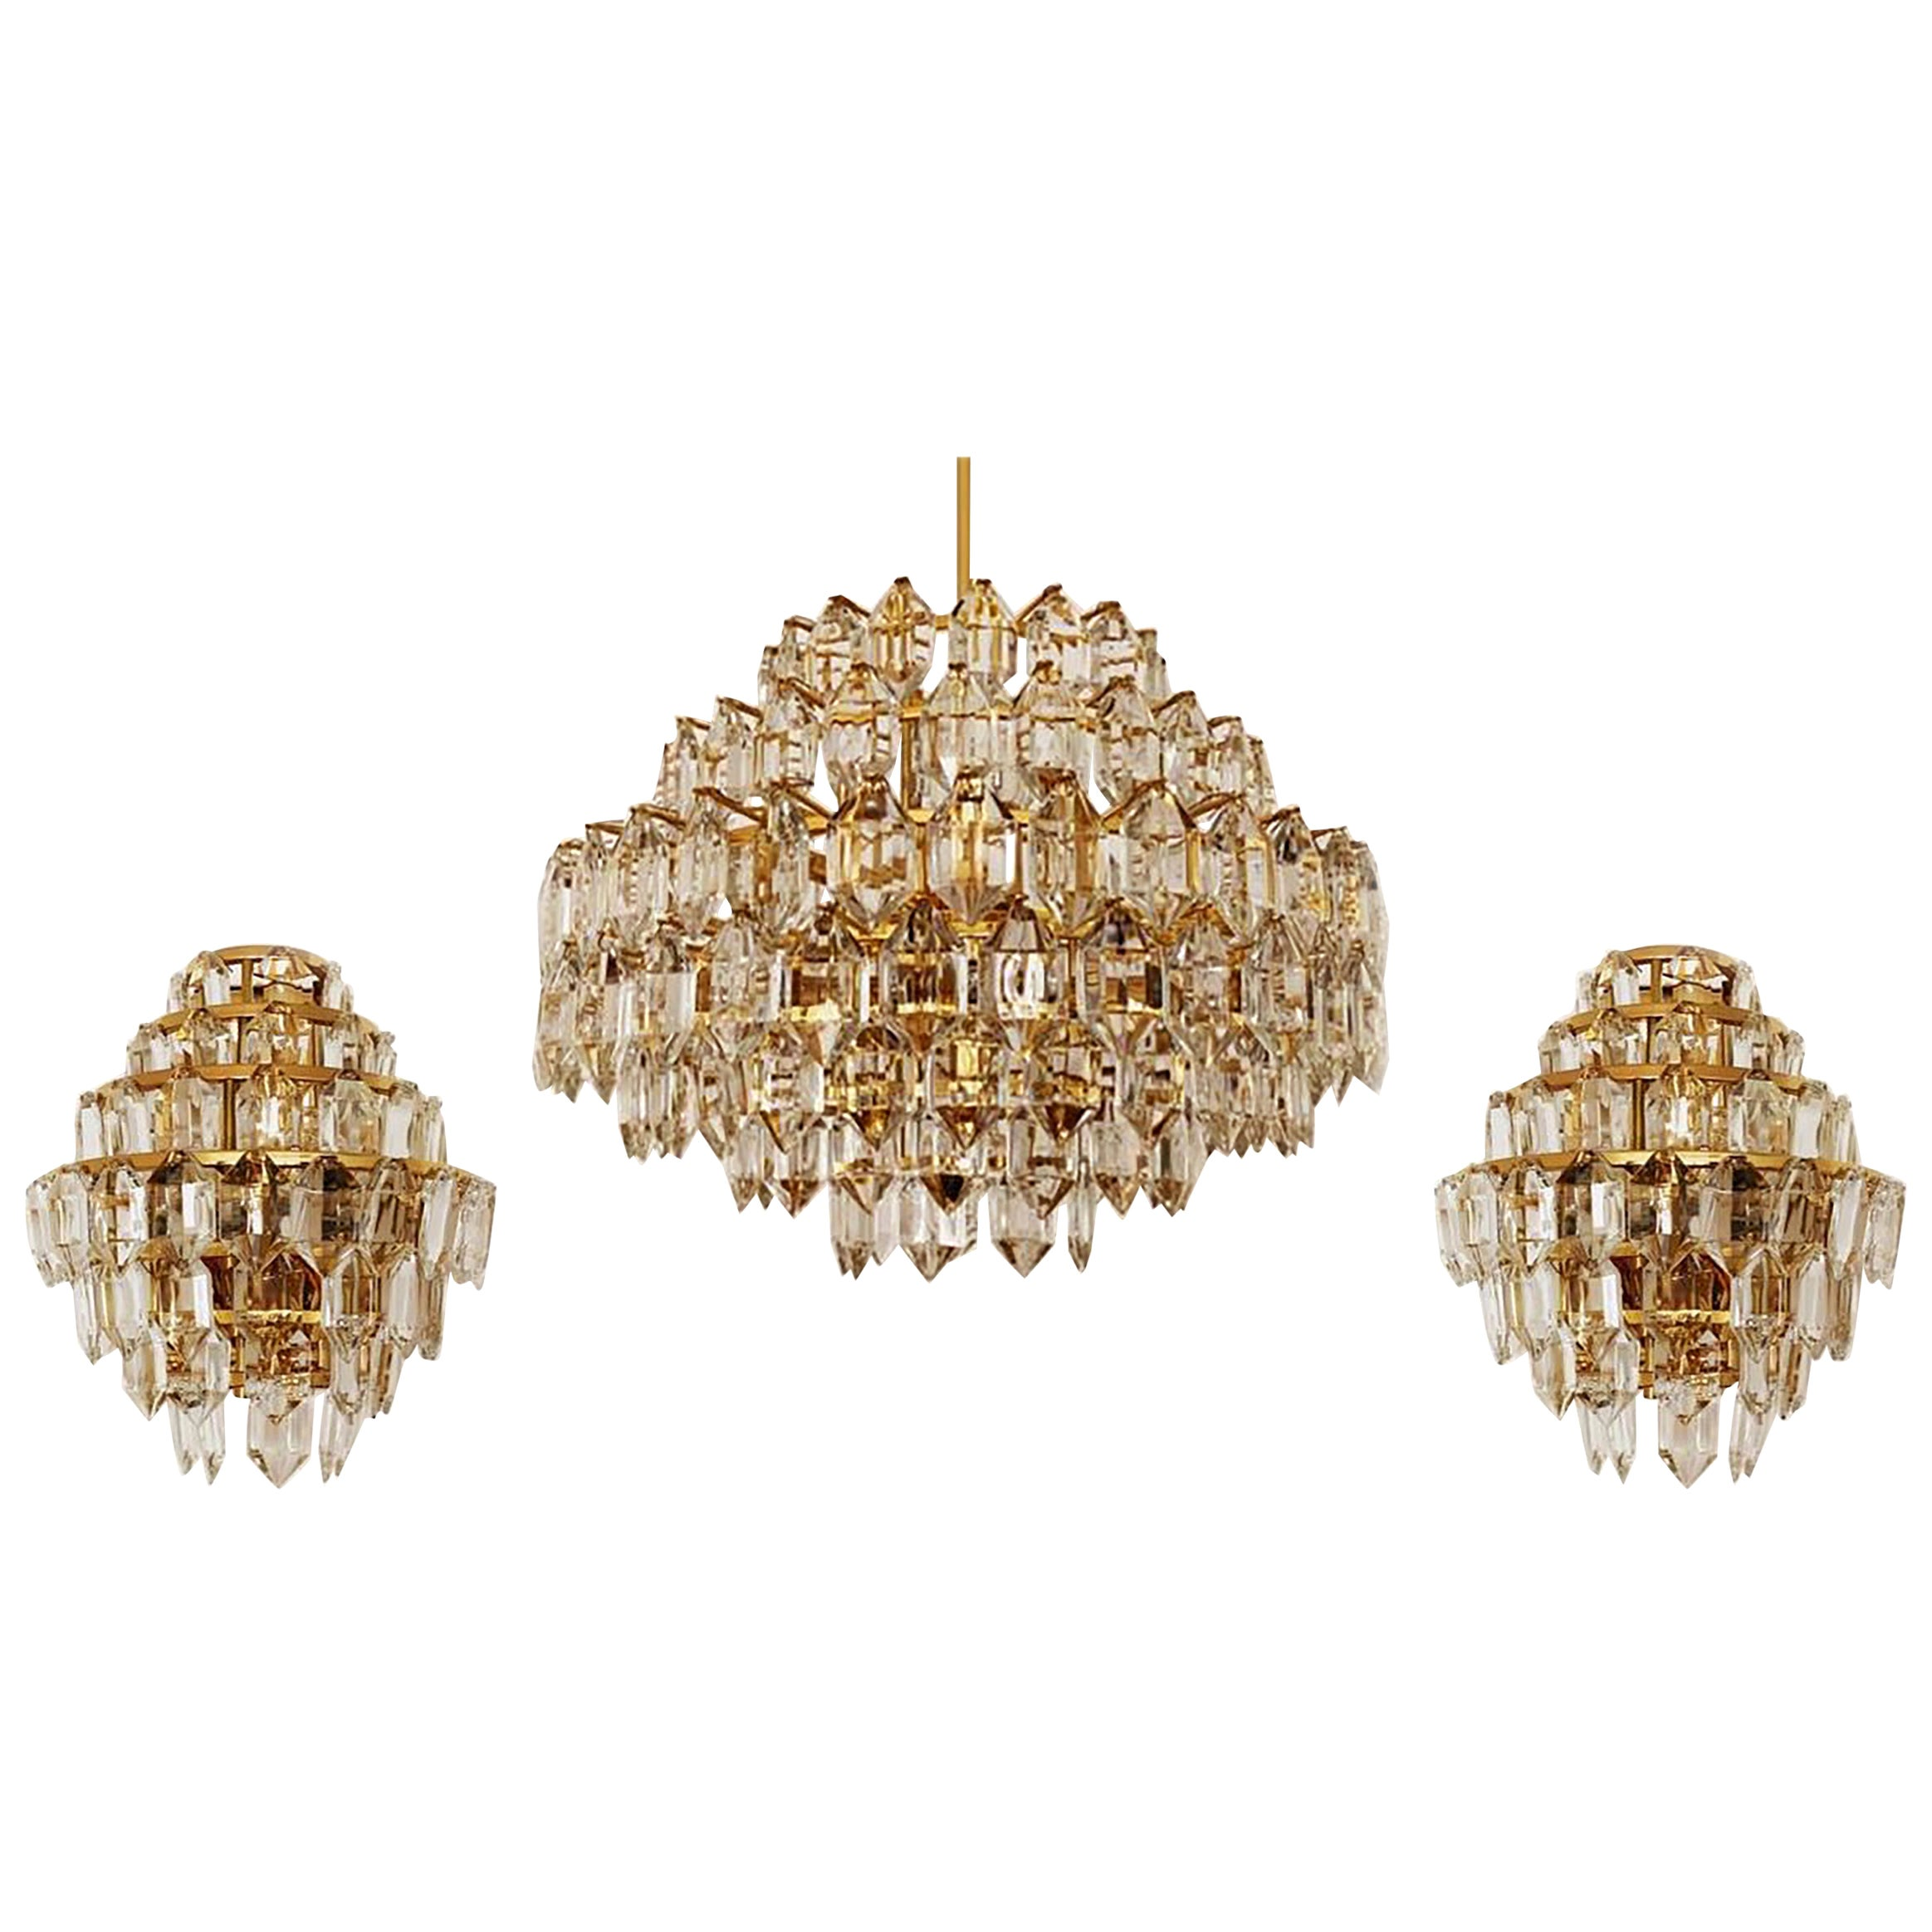 Set of Bakalowits & Sohne Chandeliers, Brass and Crystal Glass, Austria, 1960s